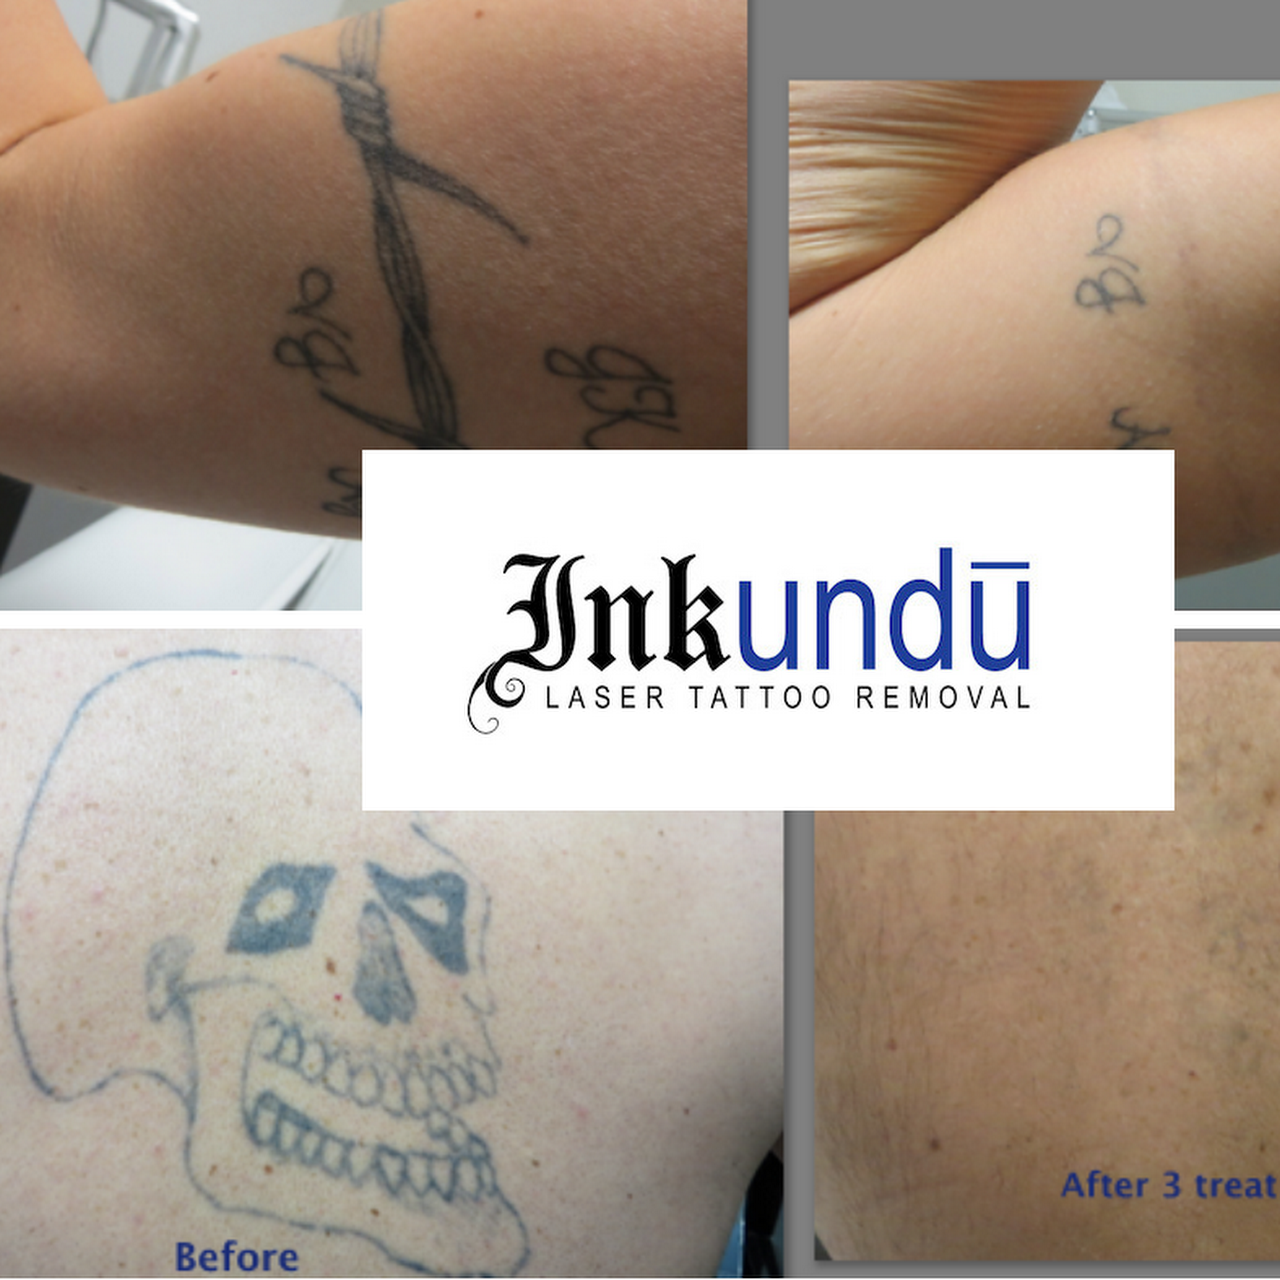 Inkundū Laser Tattoo Removal Clinic - Tattoo Removal Service in ...